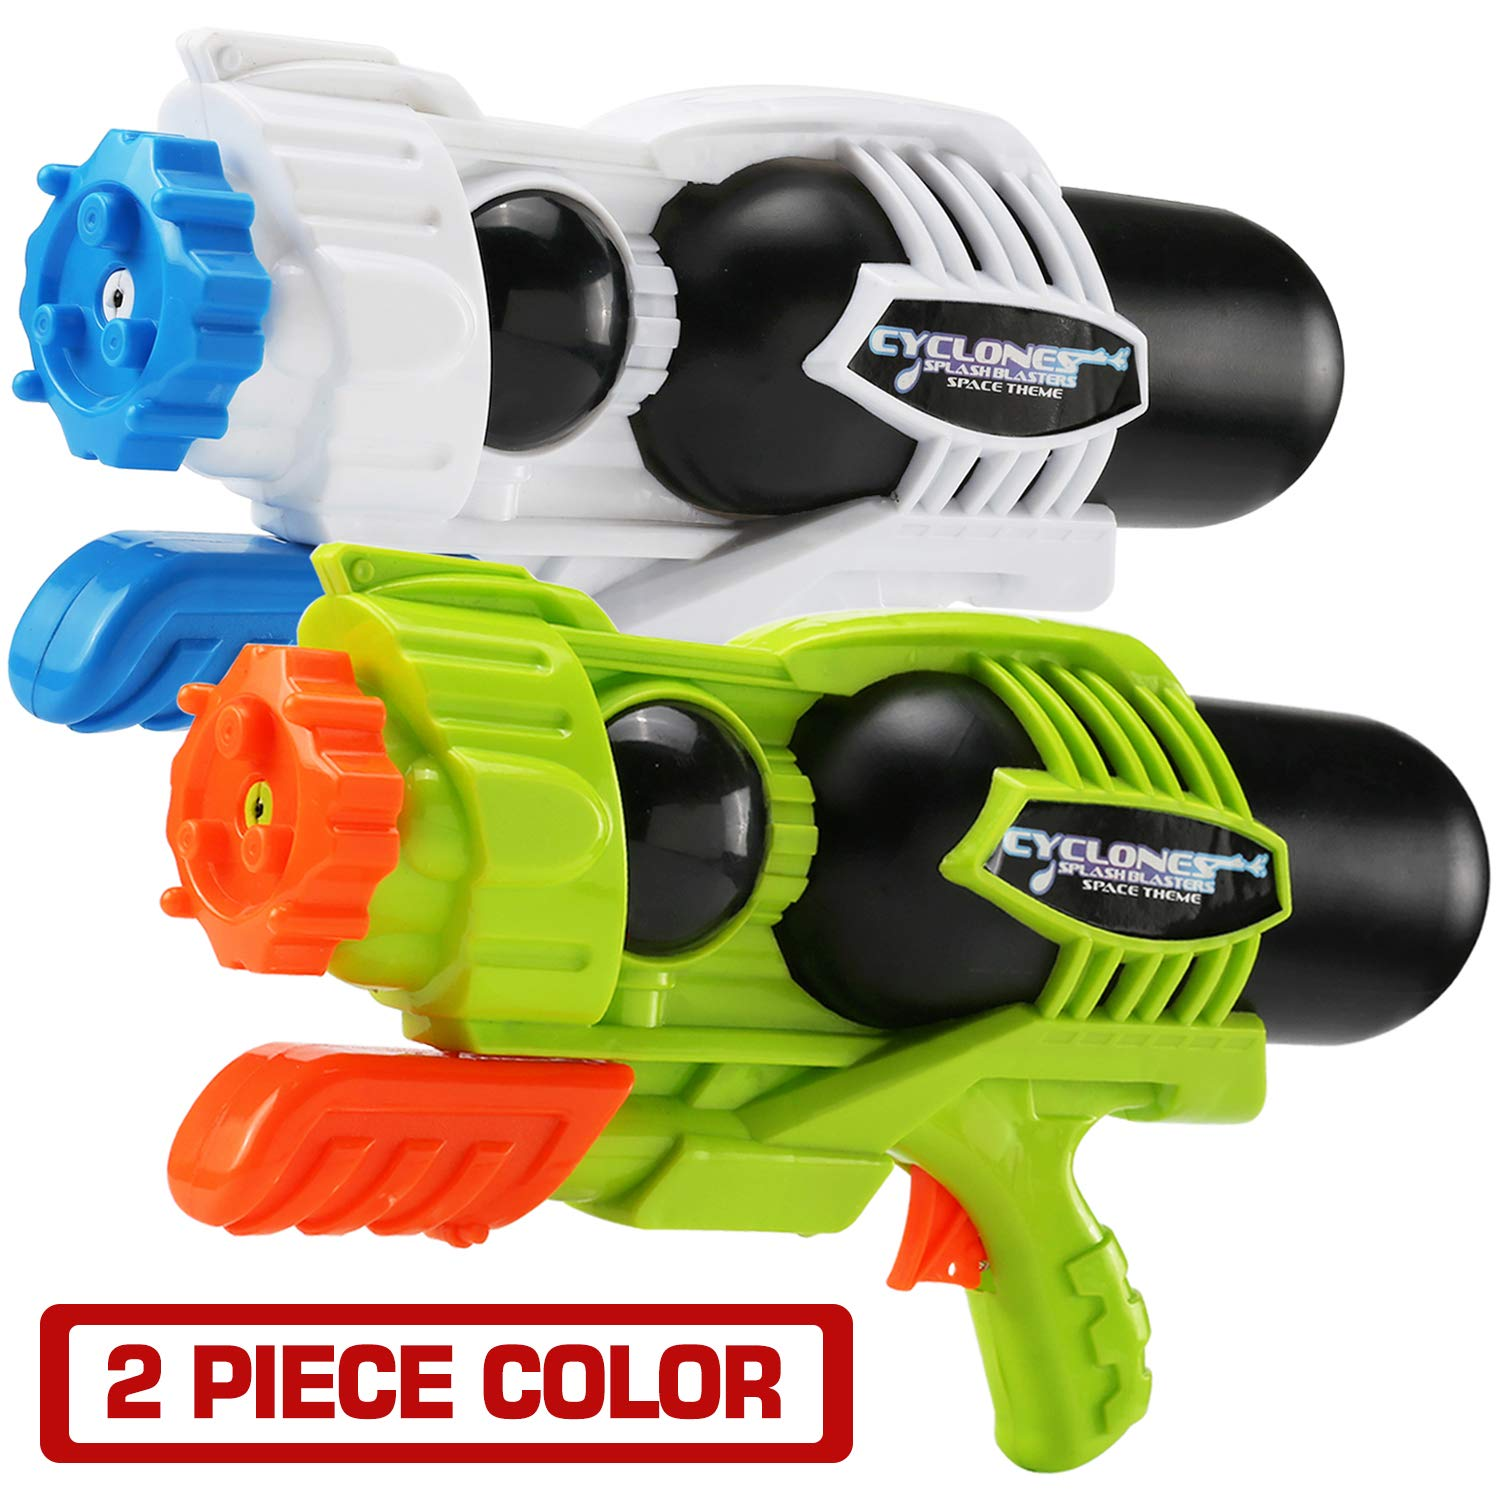 MAPIXO 2 Pack Super Water Gun(No Leaking), High Capacity Water Shooter Soaker Blaster Squirt Toy for Swimming Pool Party Sand Beach Game Outdoor Summer FightActivity for Child Kid boy and Girl by MAPIXO